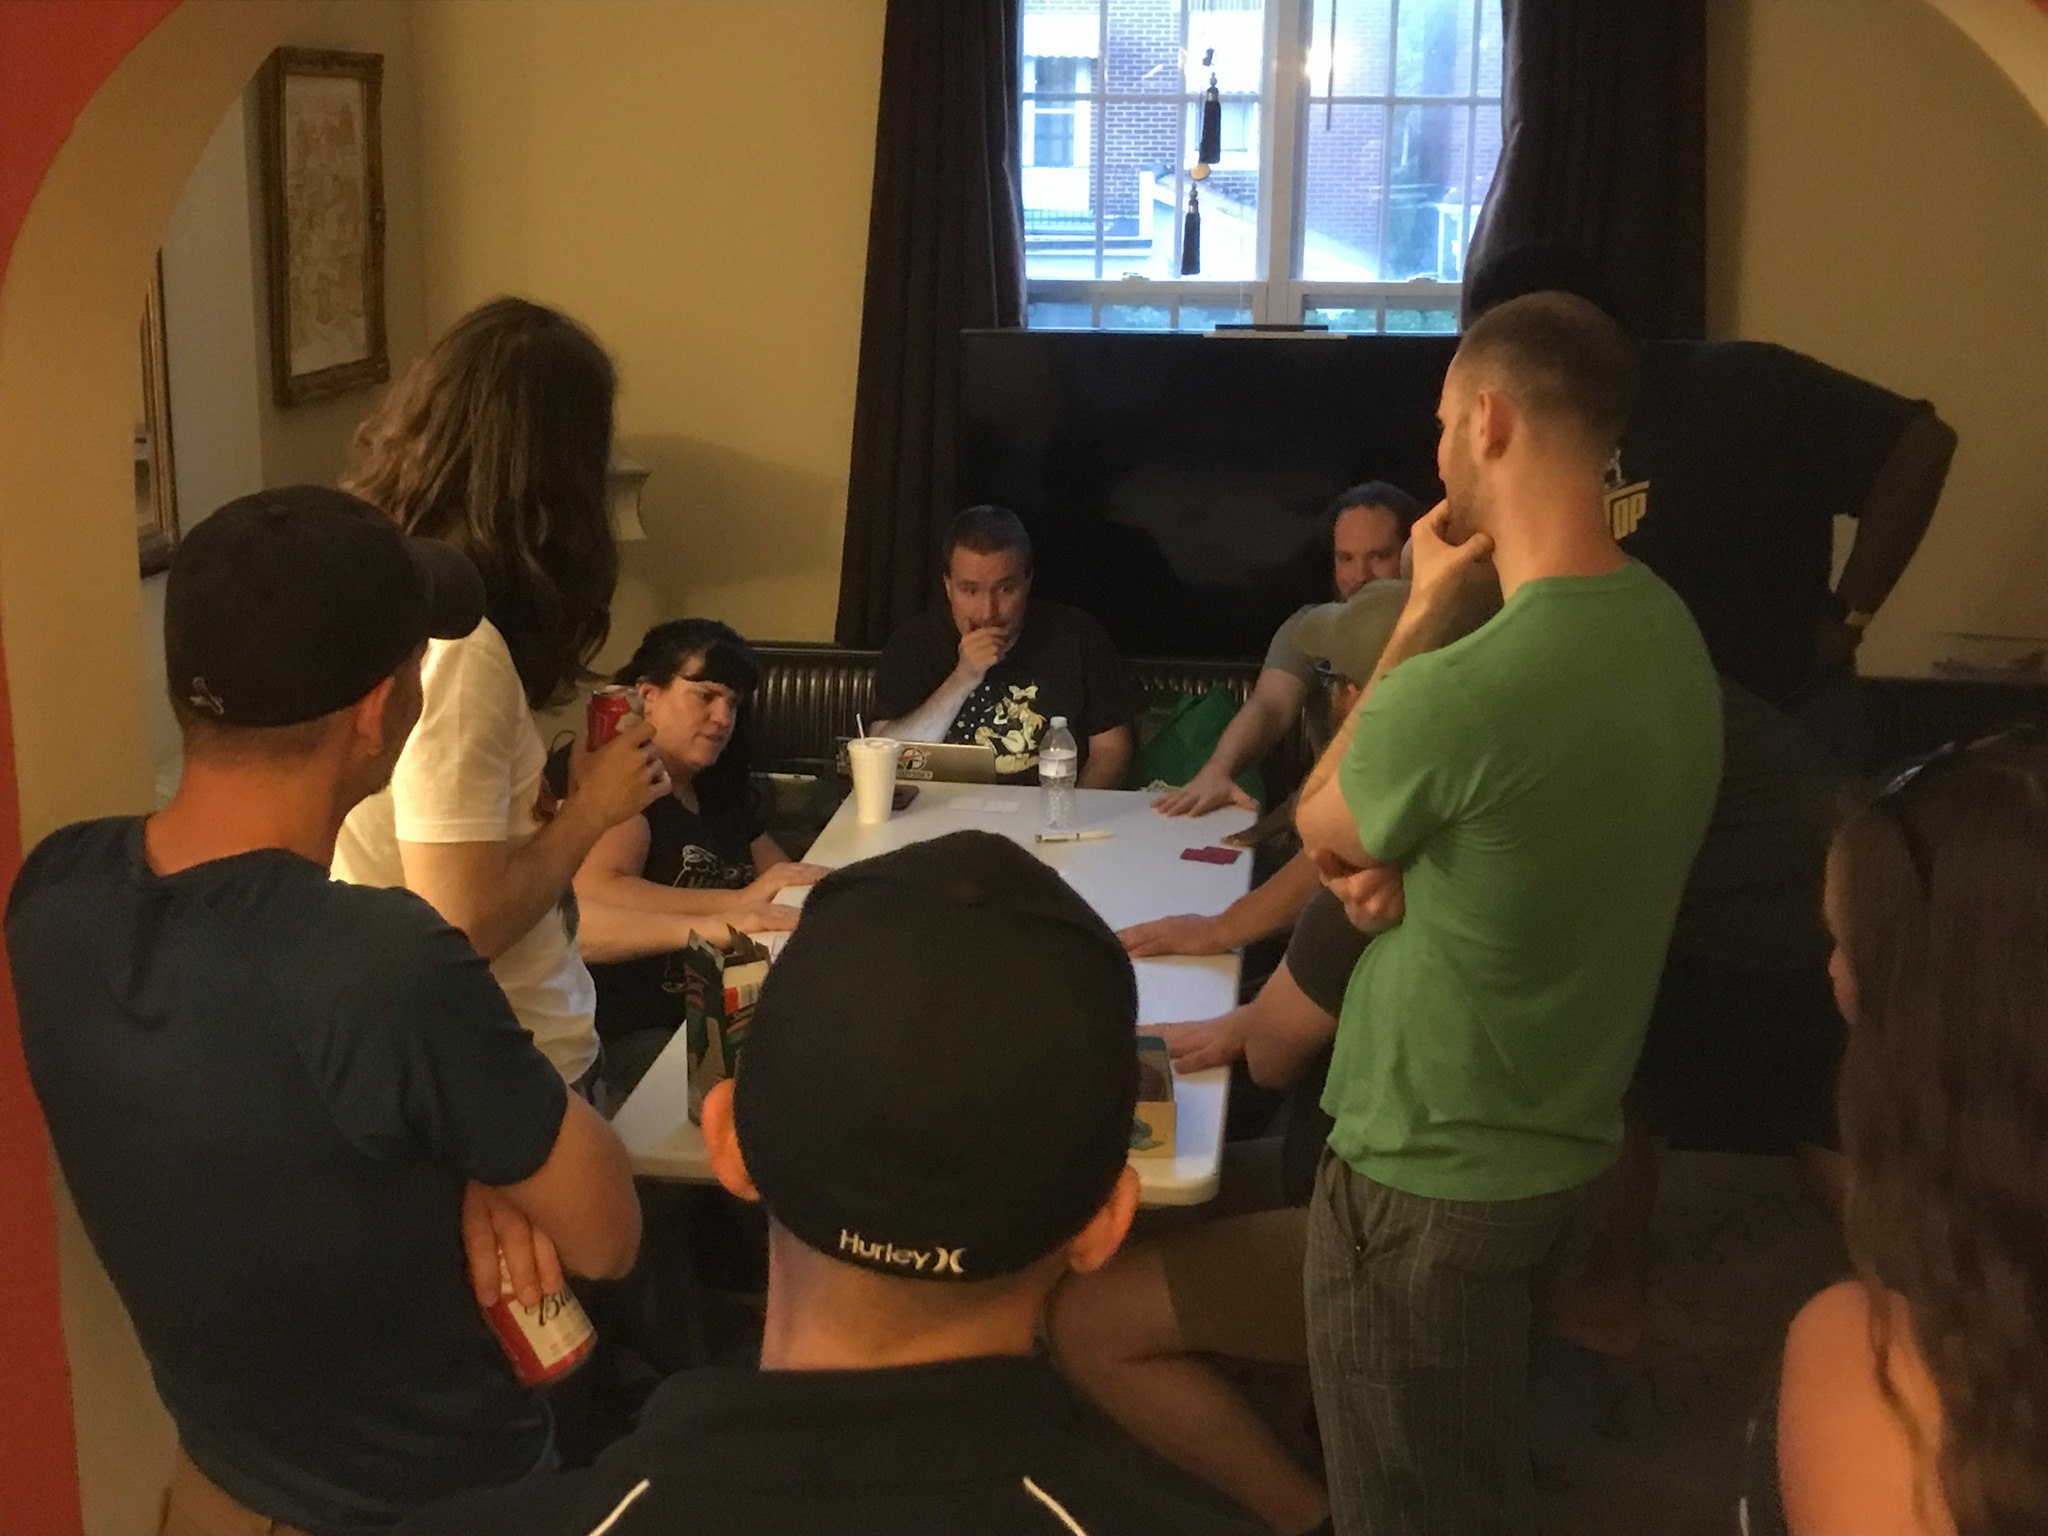 An impromptu group feedback session